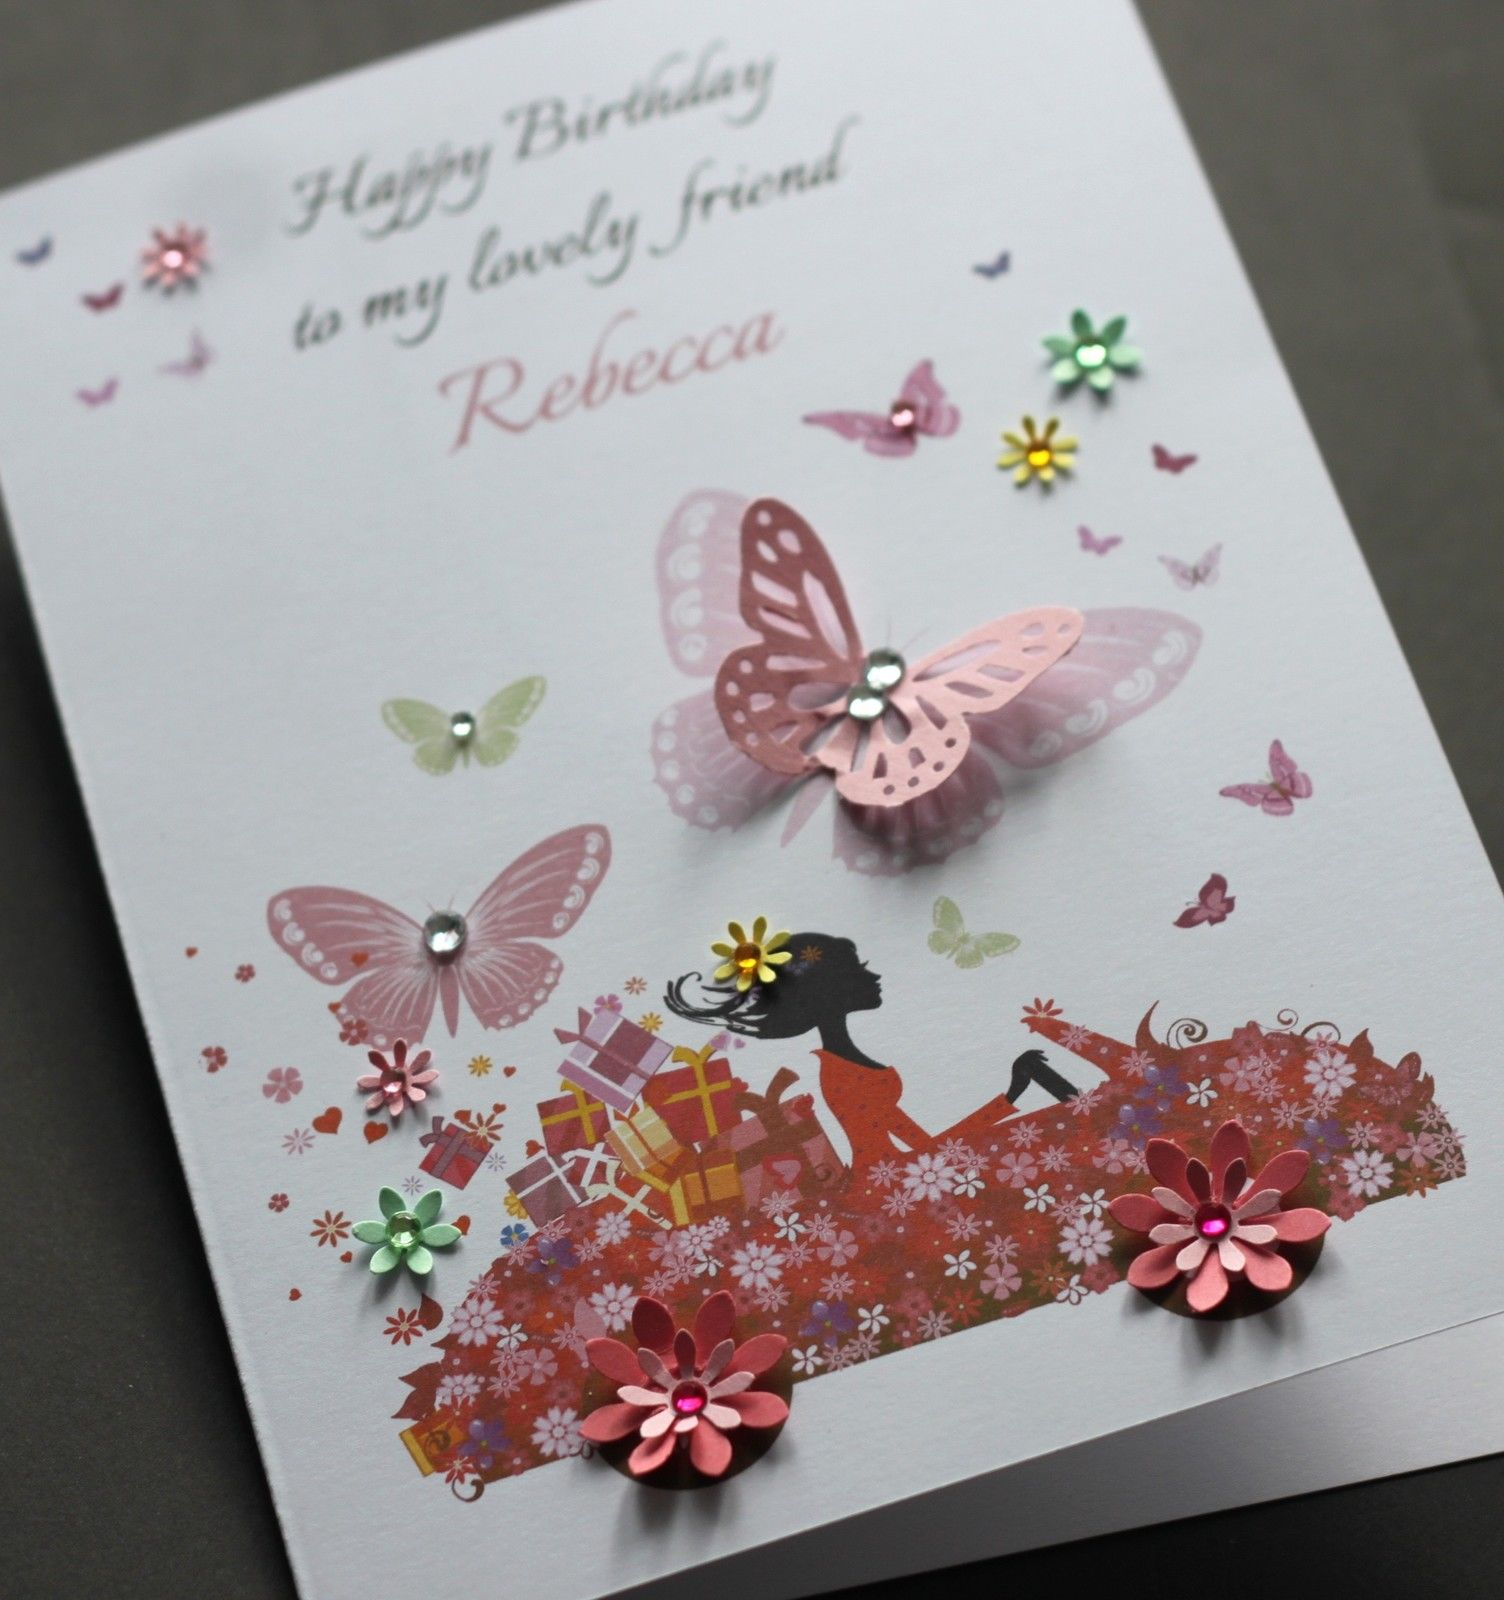 online birthday greeting cards for friends ; A5-Handmade-Personalised-CUTE-CAR-Birthday-Card-sister-friend-daughter-mum_4